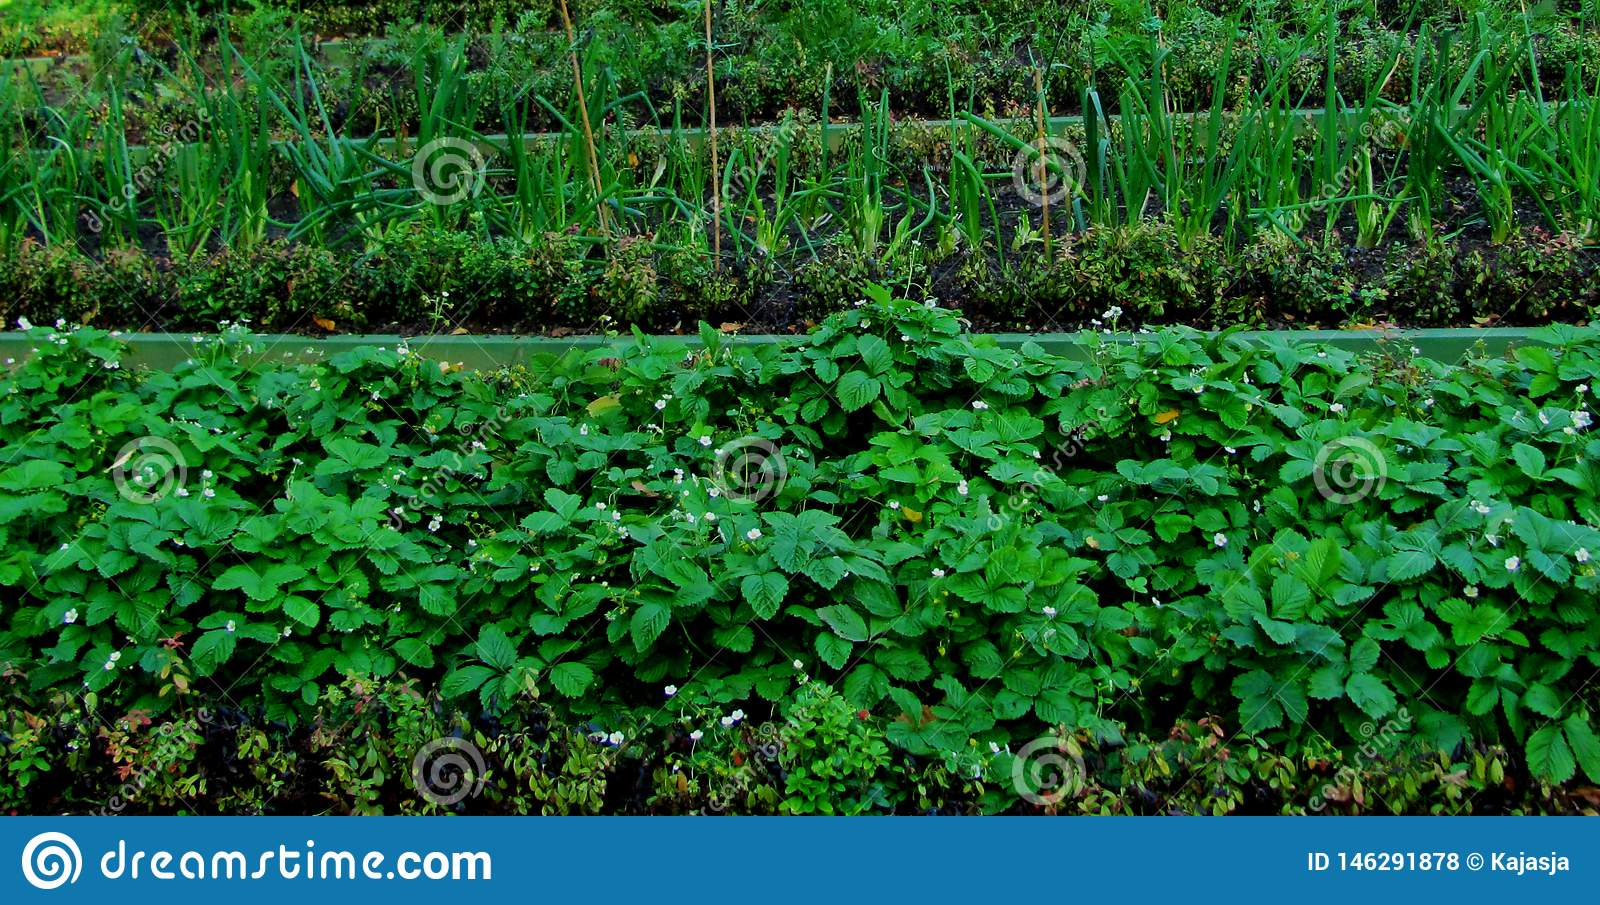 The beds of strawberries, berries and onions. the garden season